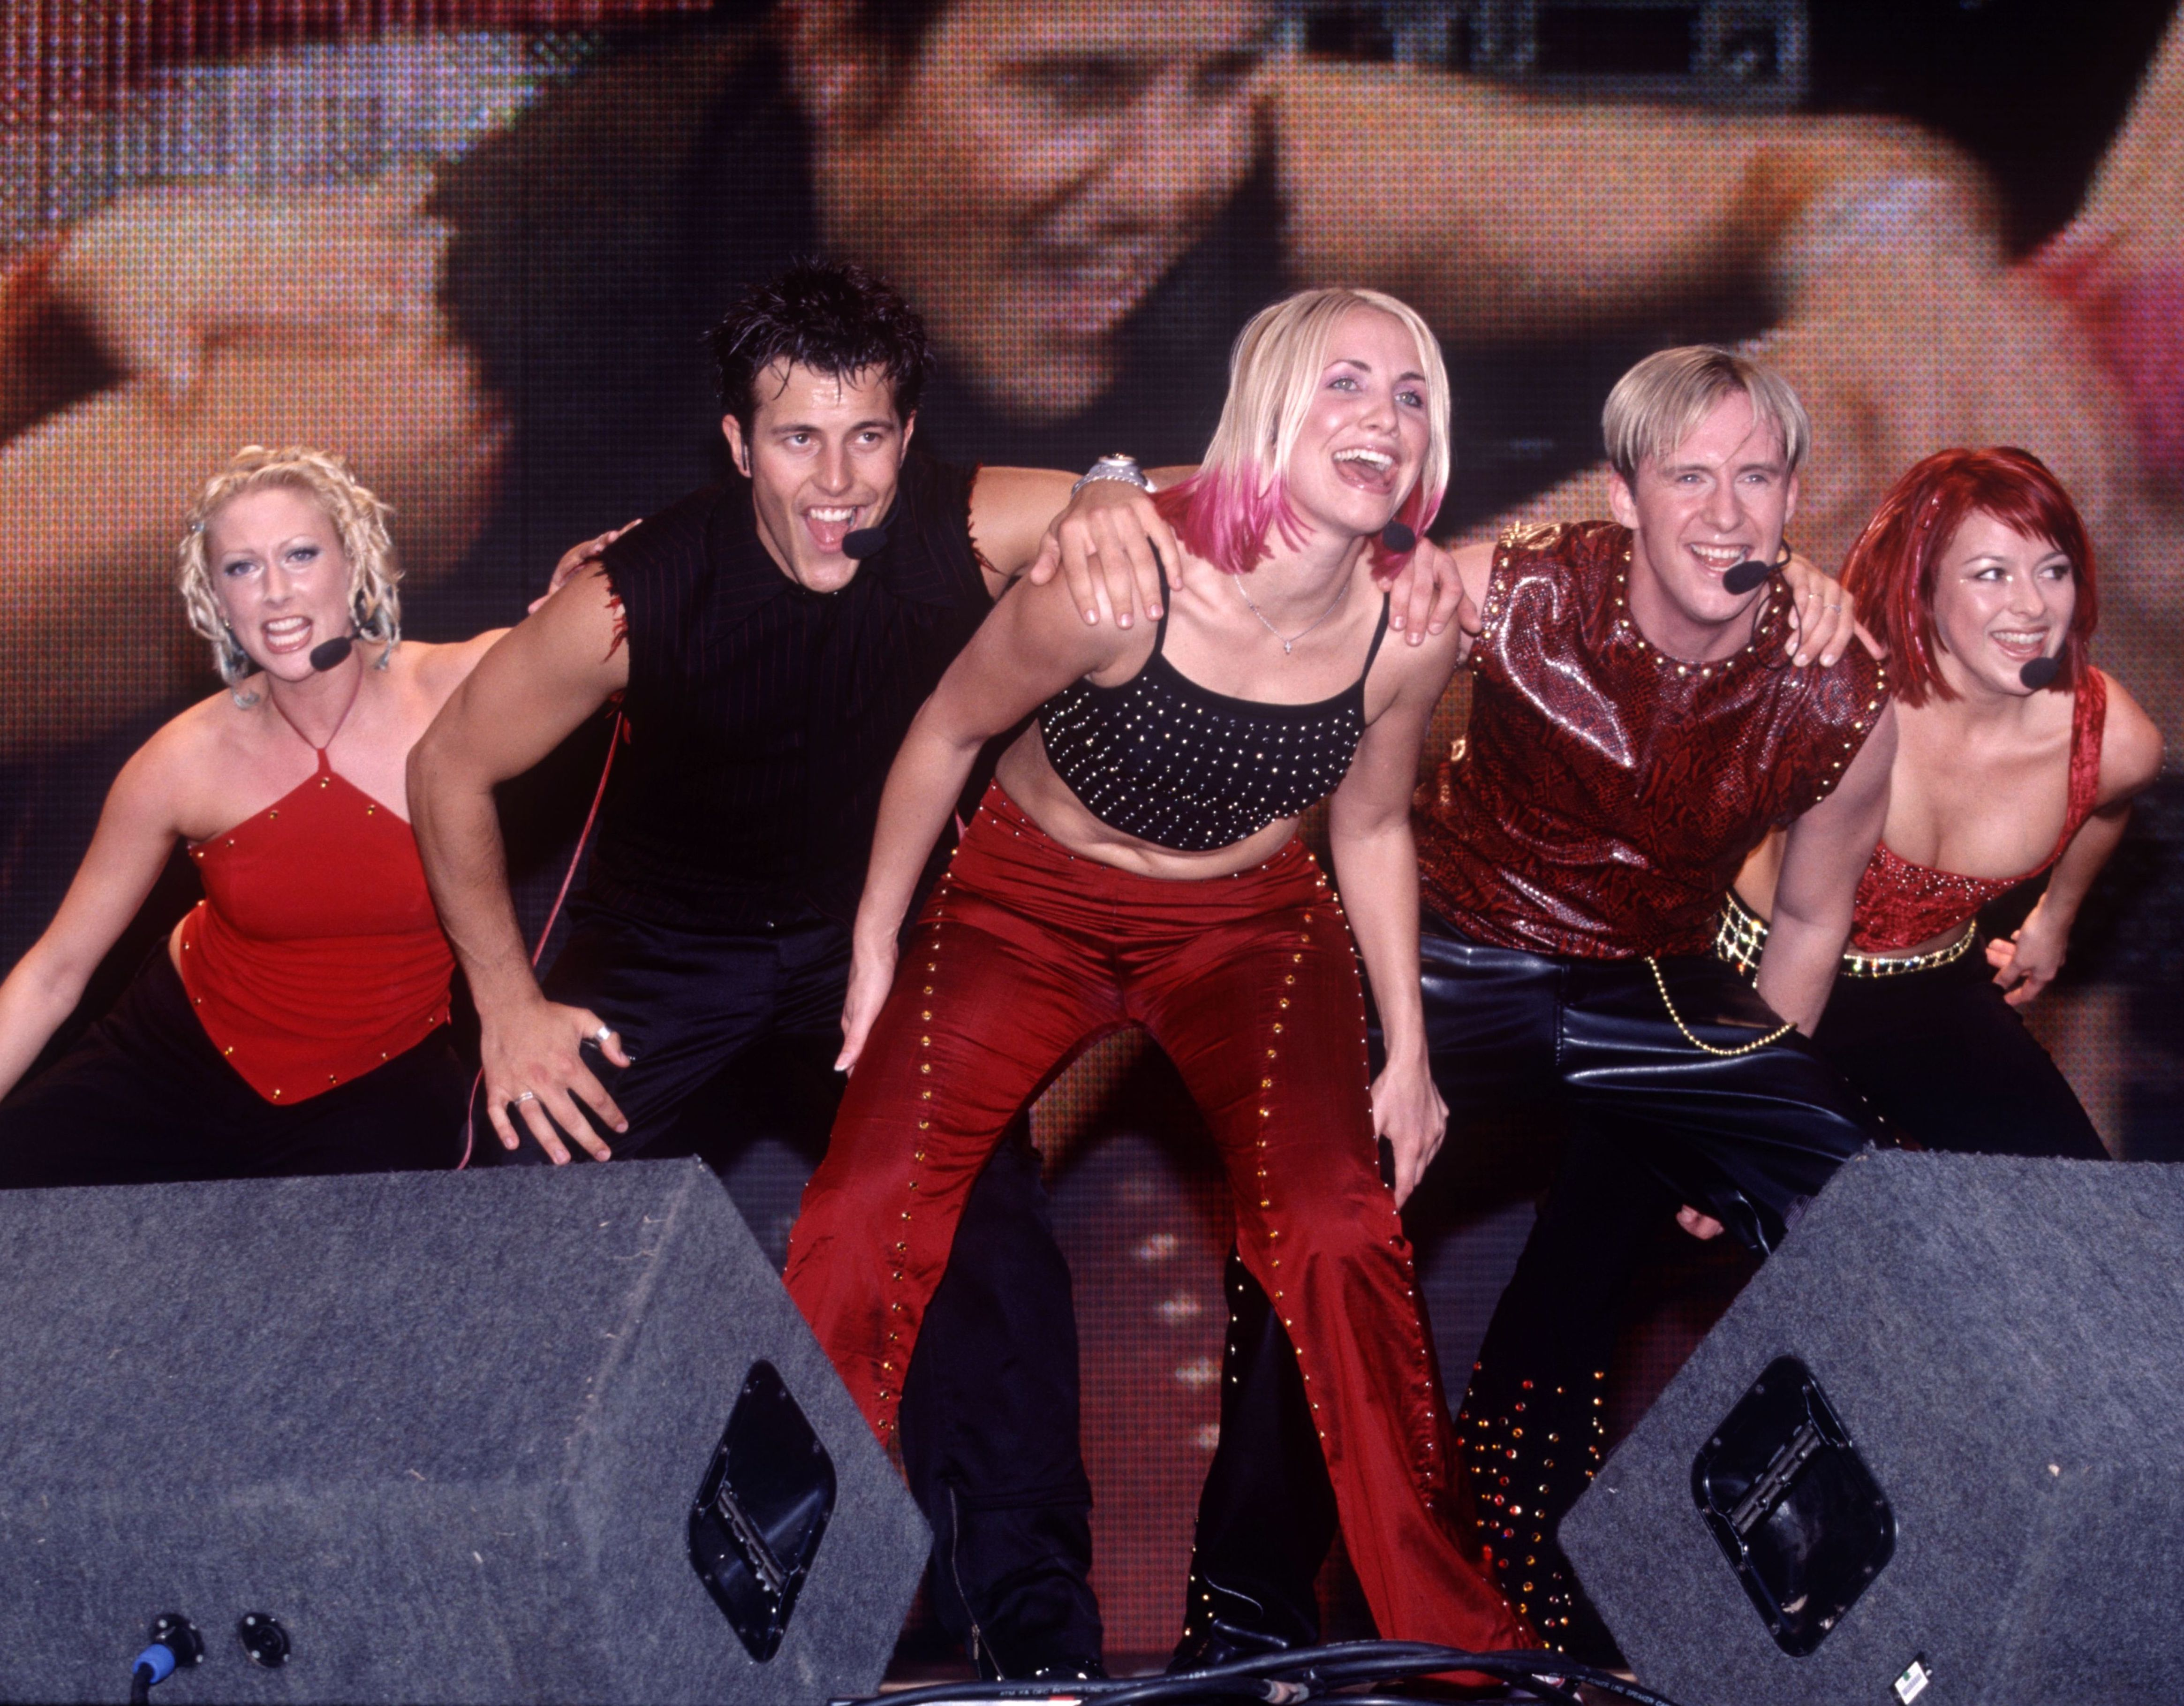 'All Saints and Five and S Club 7 would be all dripping in designer, whereas we'd be there in our same little sad red-and-black top'